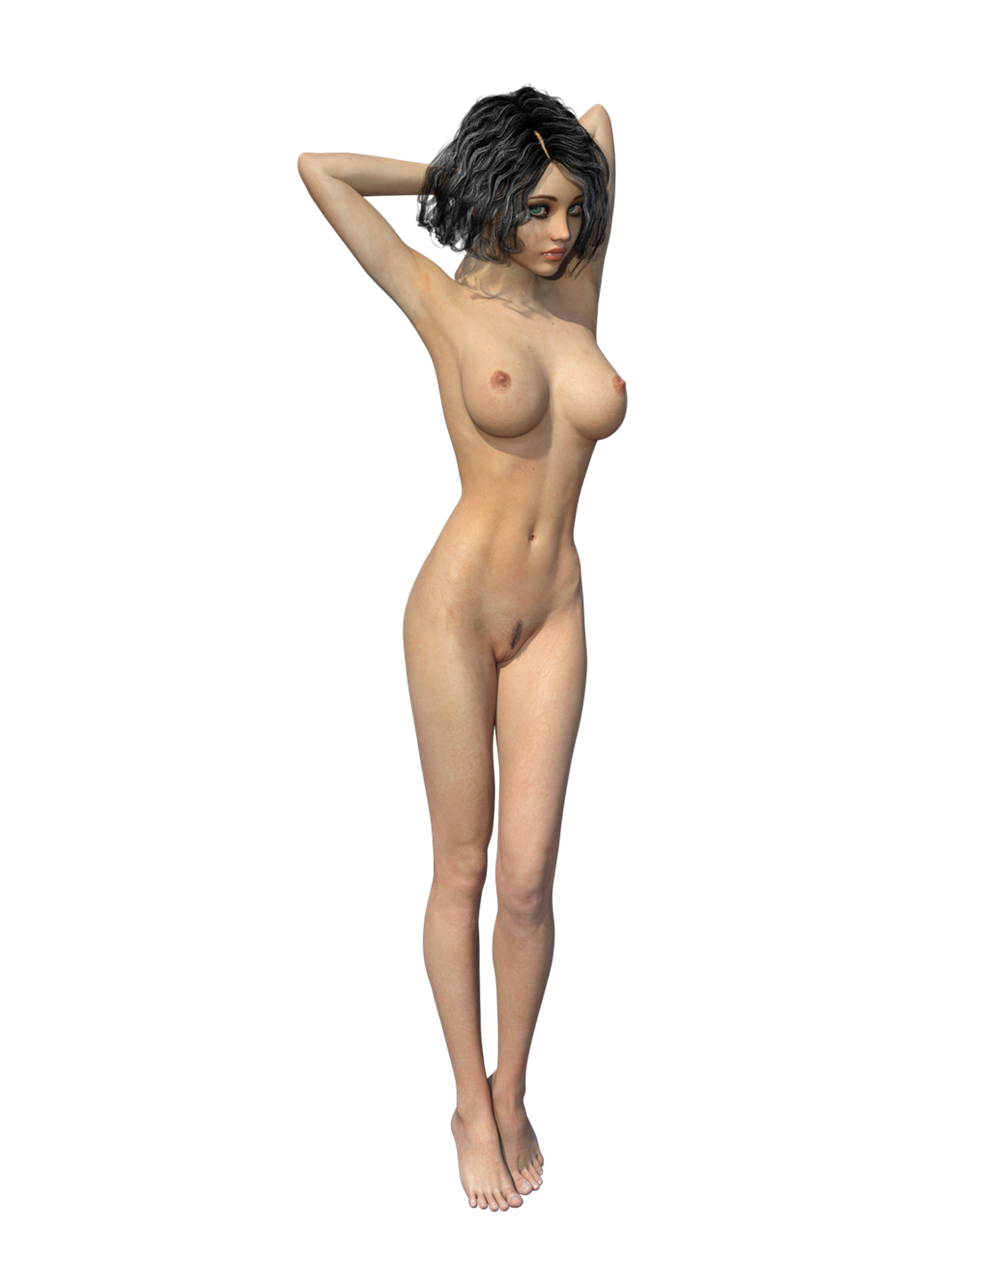 Holding nude women png pics and veggie